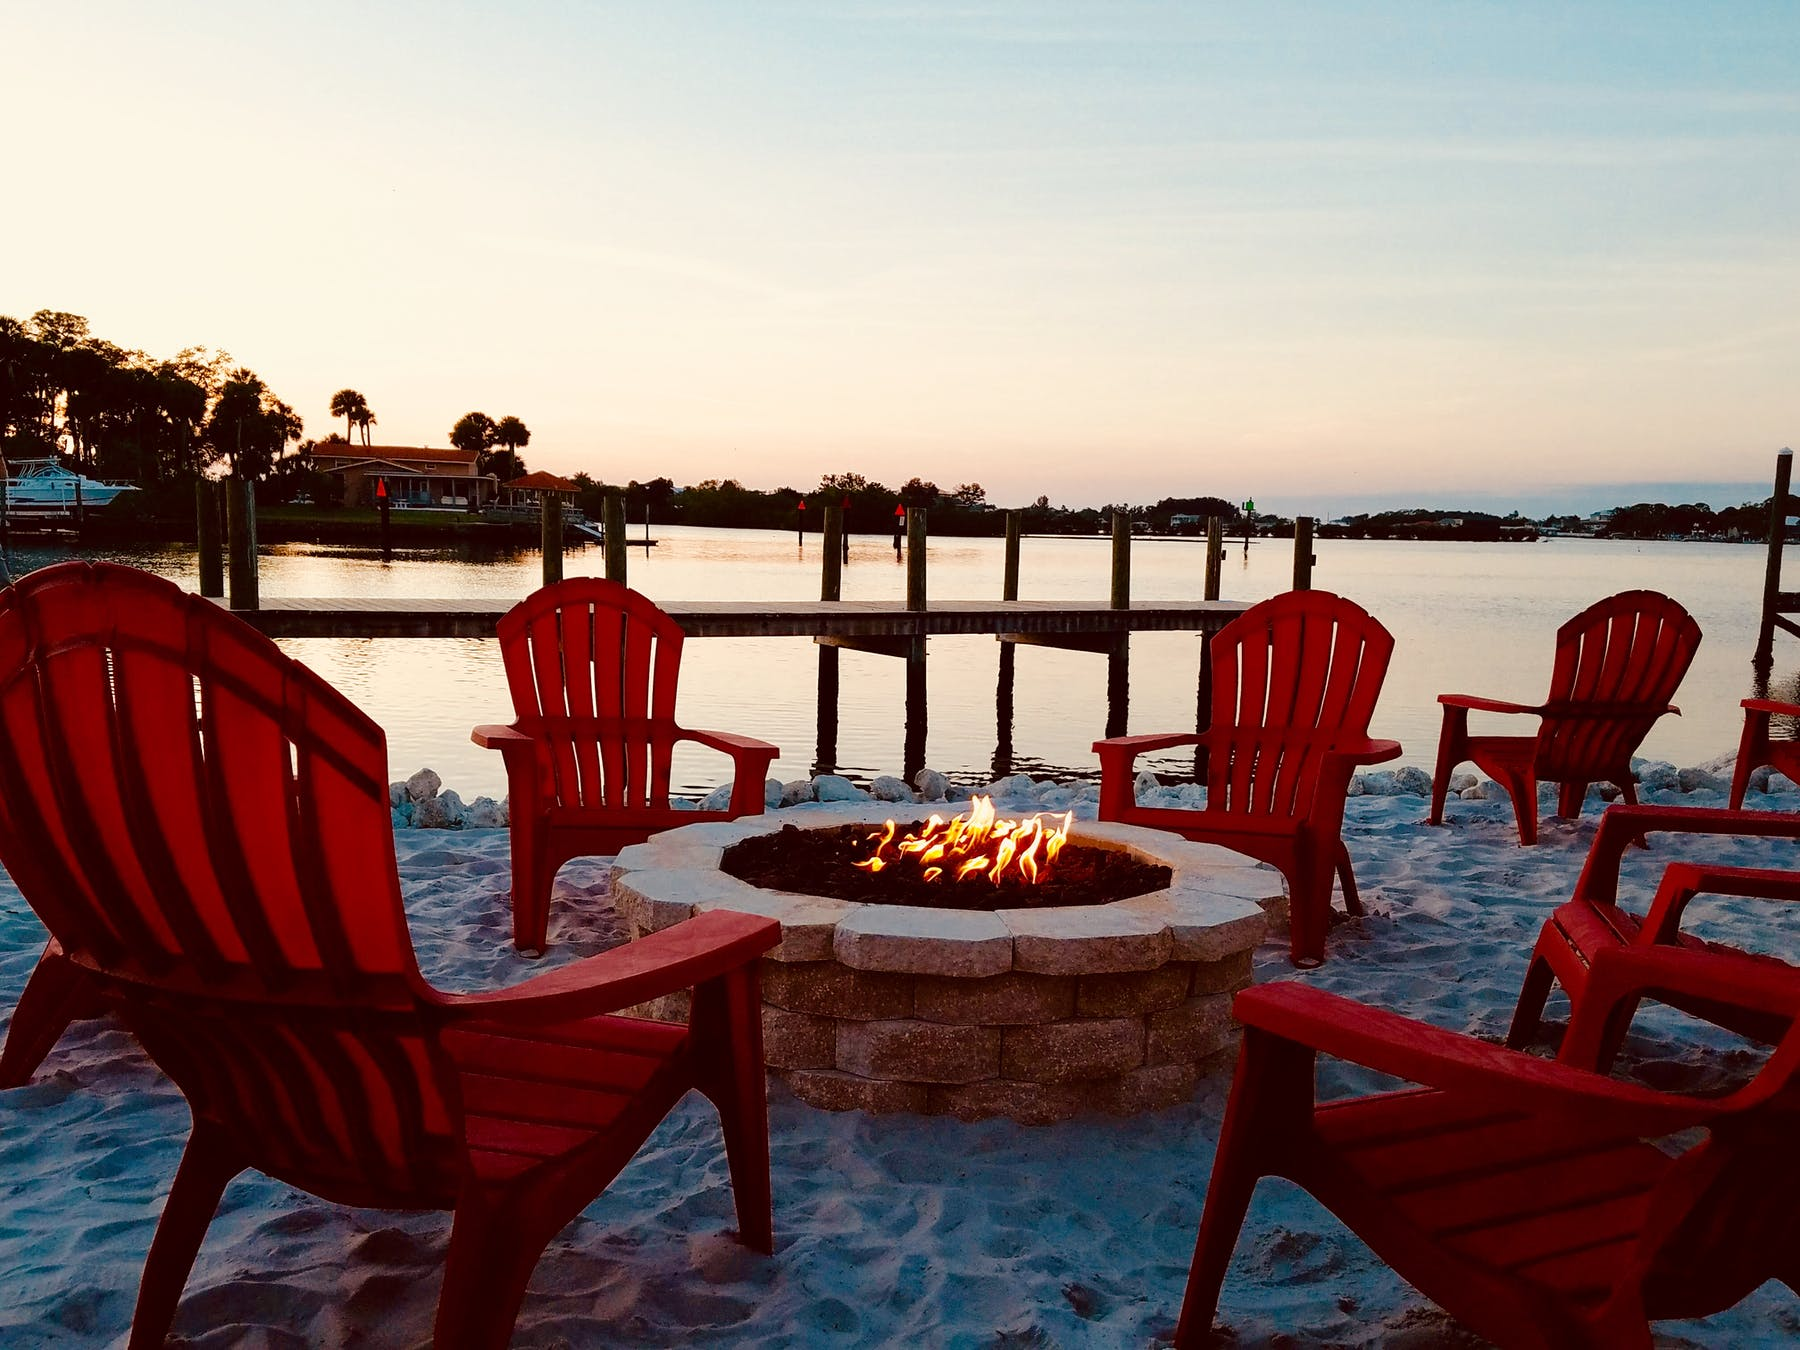 sitting area in a beach fireplace